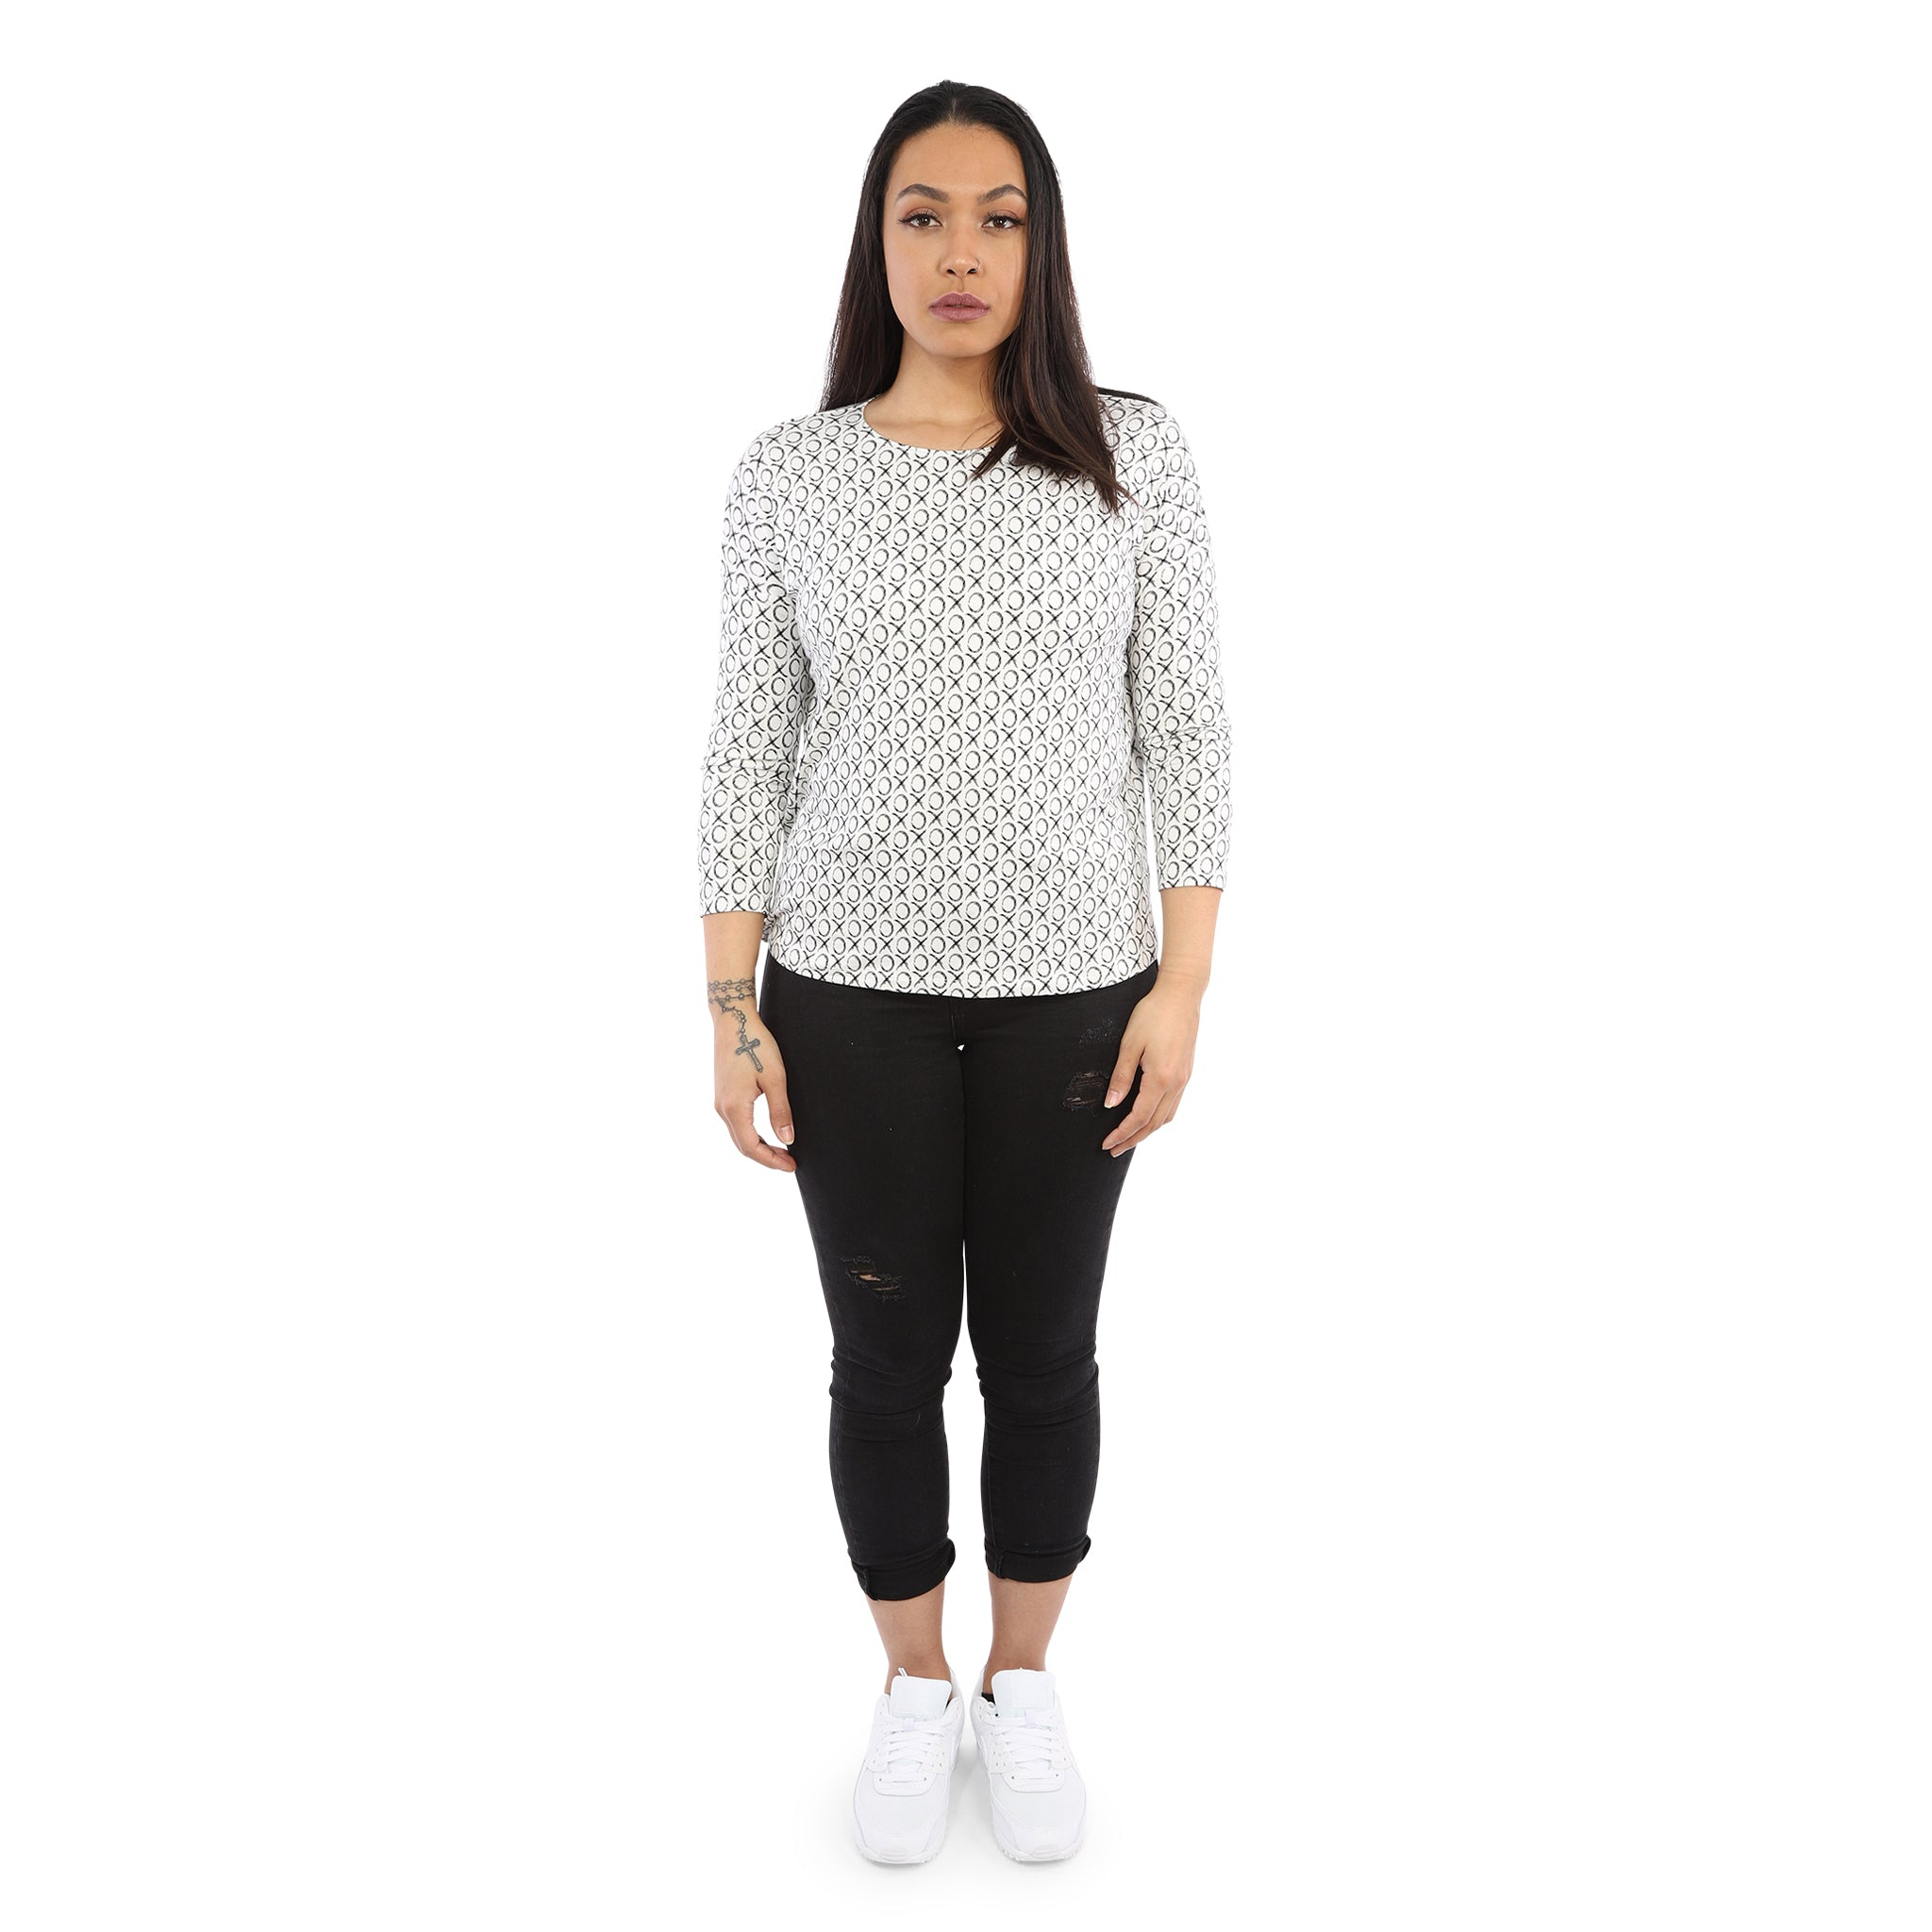 <transcy>Dengan Love Knit Top</transcy>